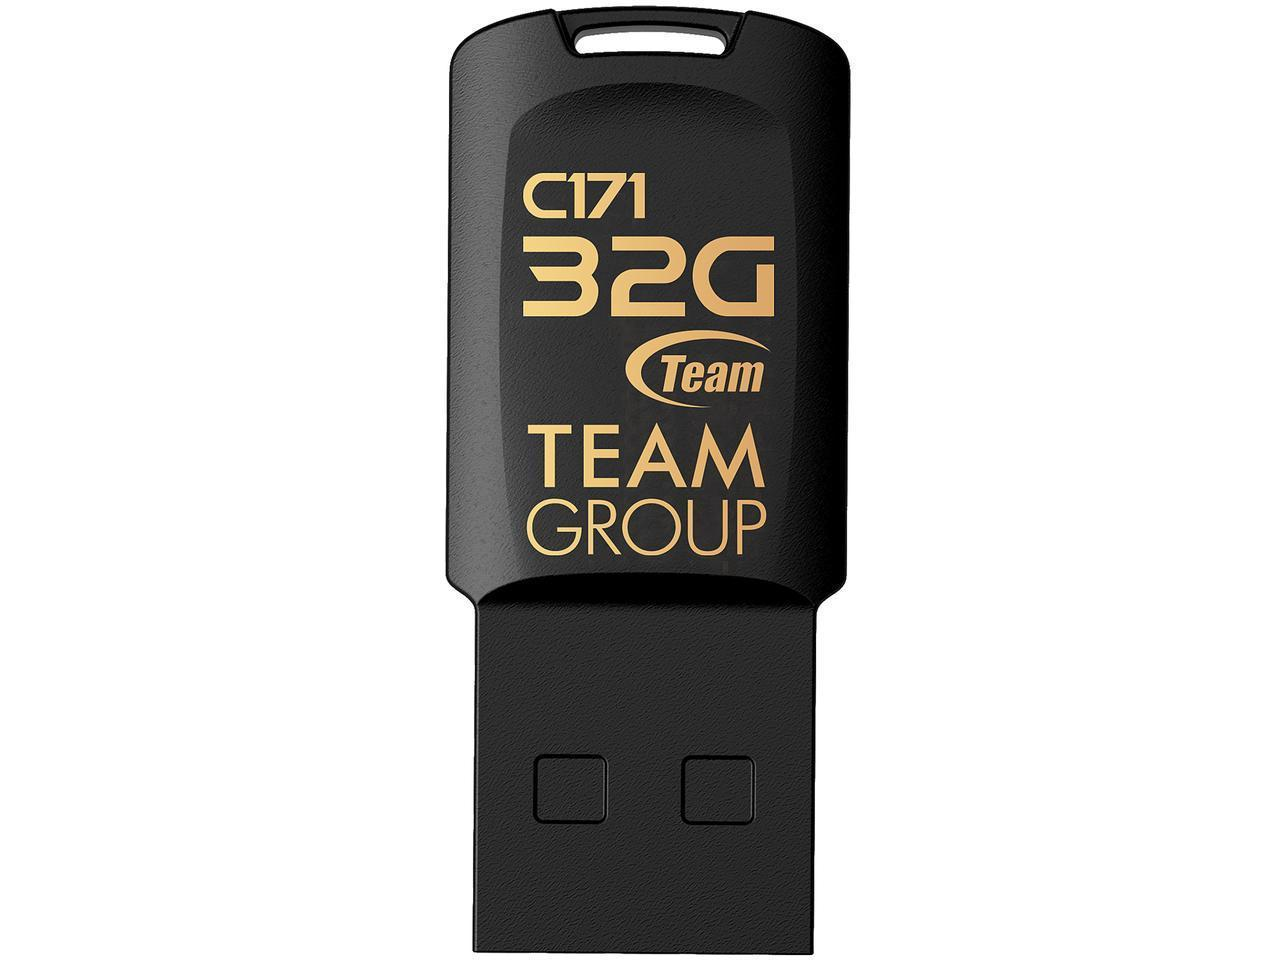 USB памет Team Group C171 32GB USB 2.0, Черен